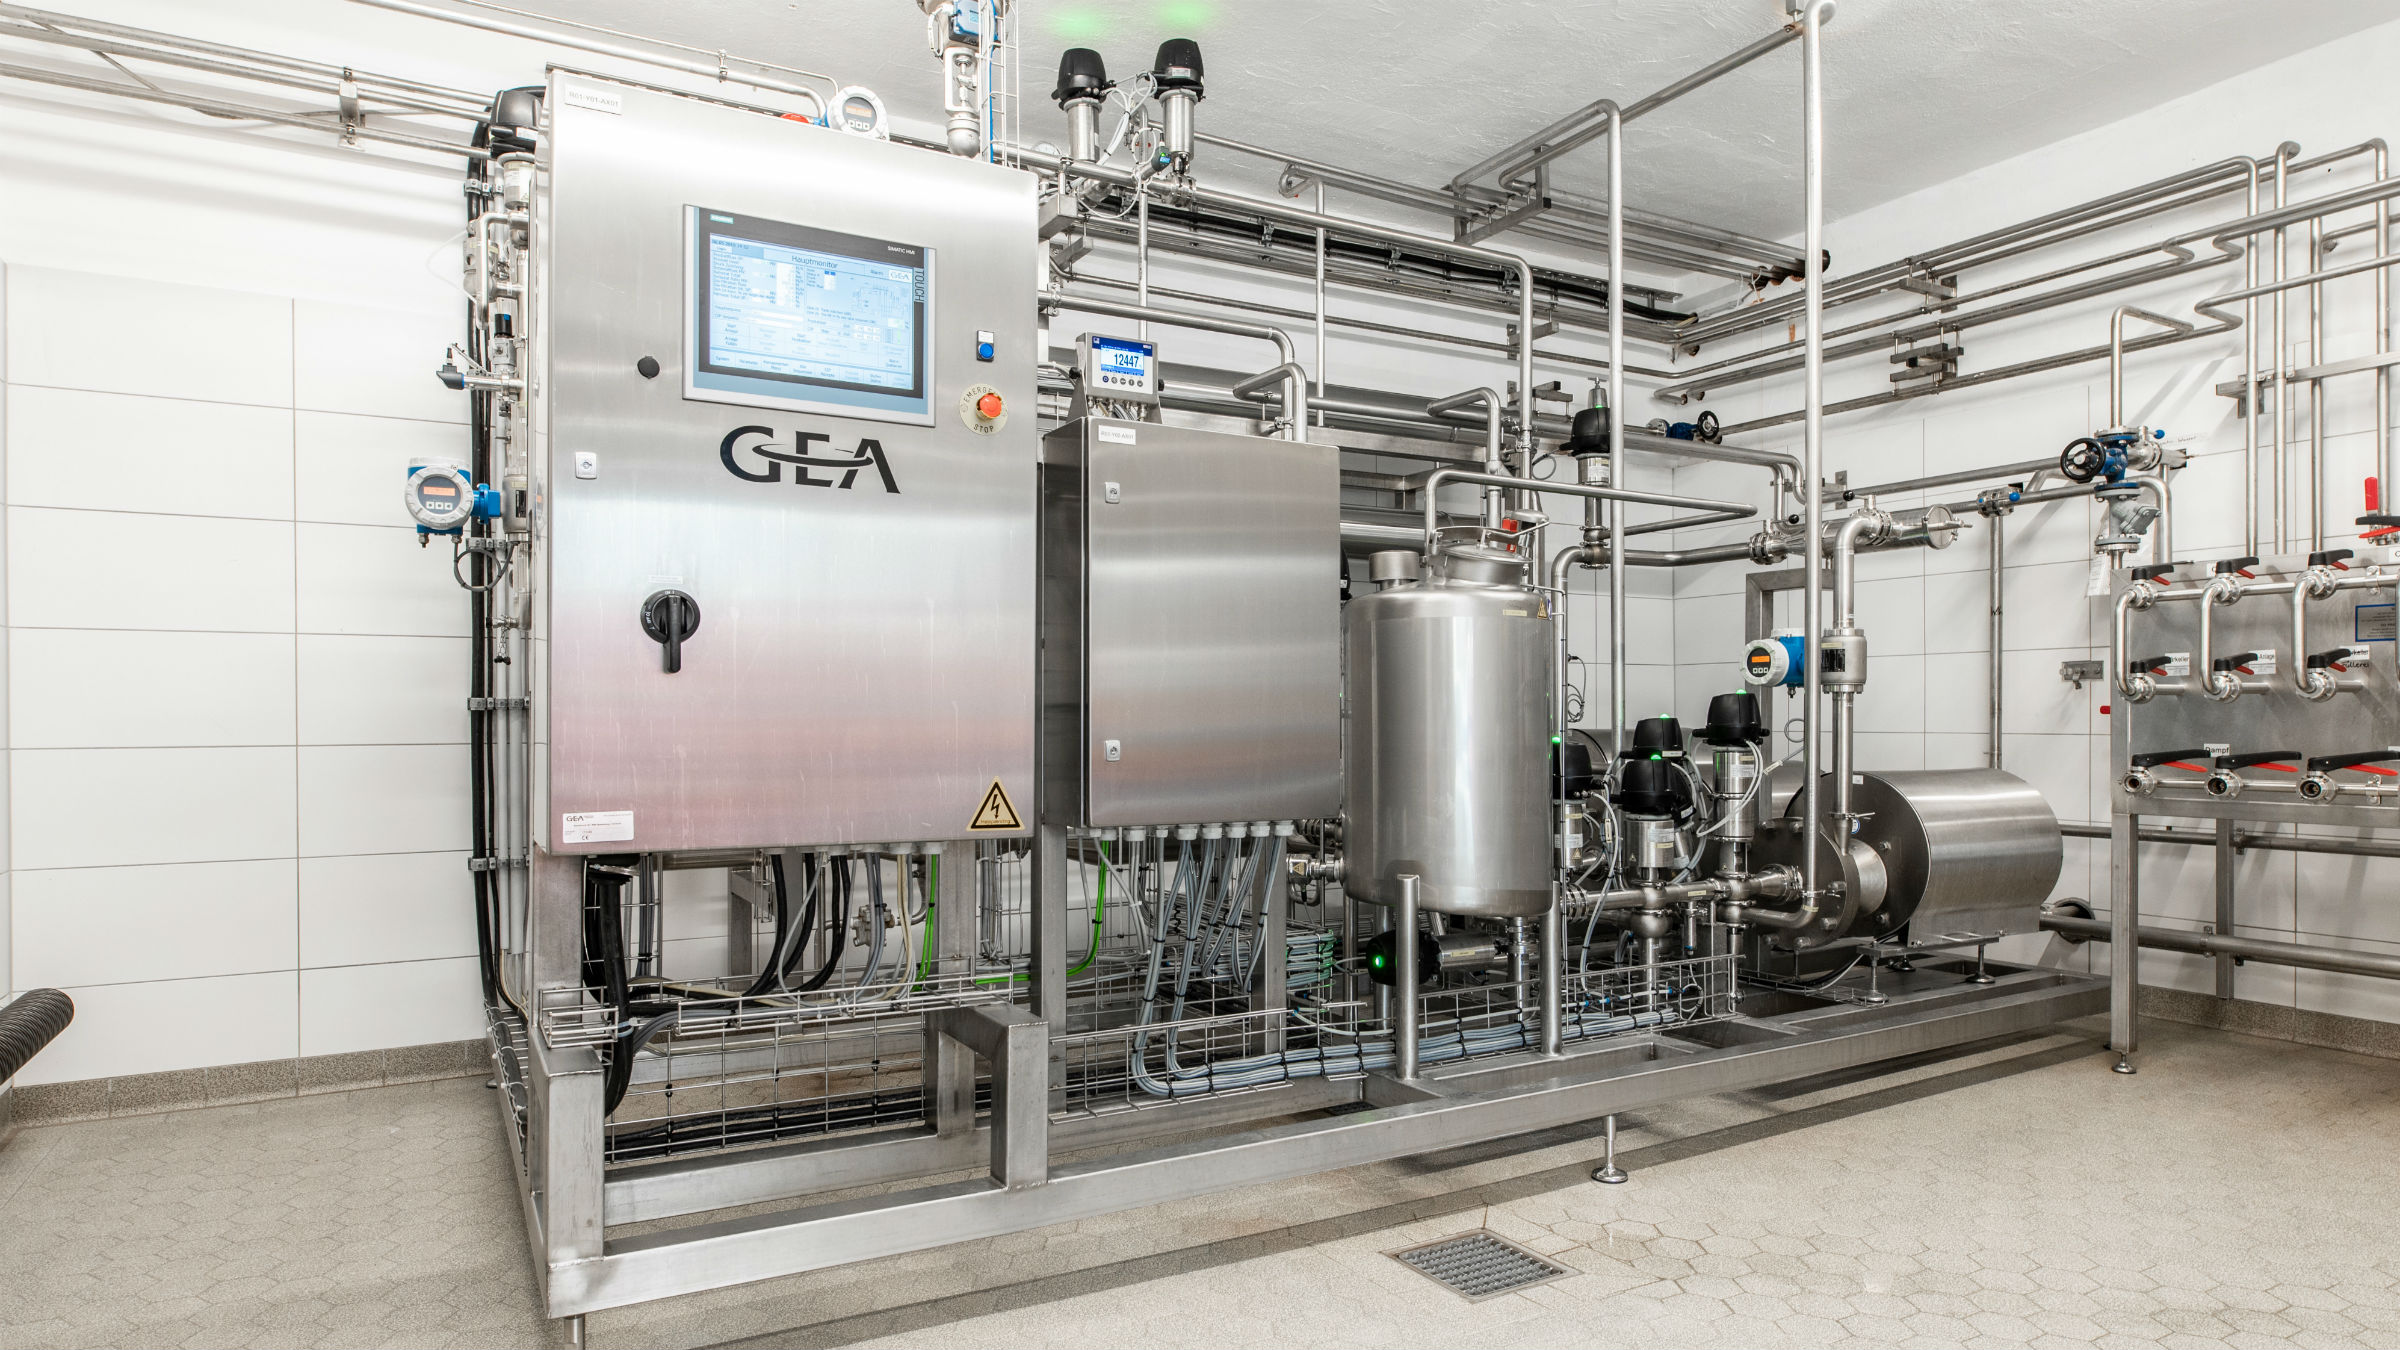 GEA AromaPlus: GEA firmly believes that reverse osmosis is the best method for producing great, honest-to-goodness beer with authentic flavors. Image: GEA/Mike Henning